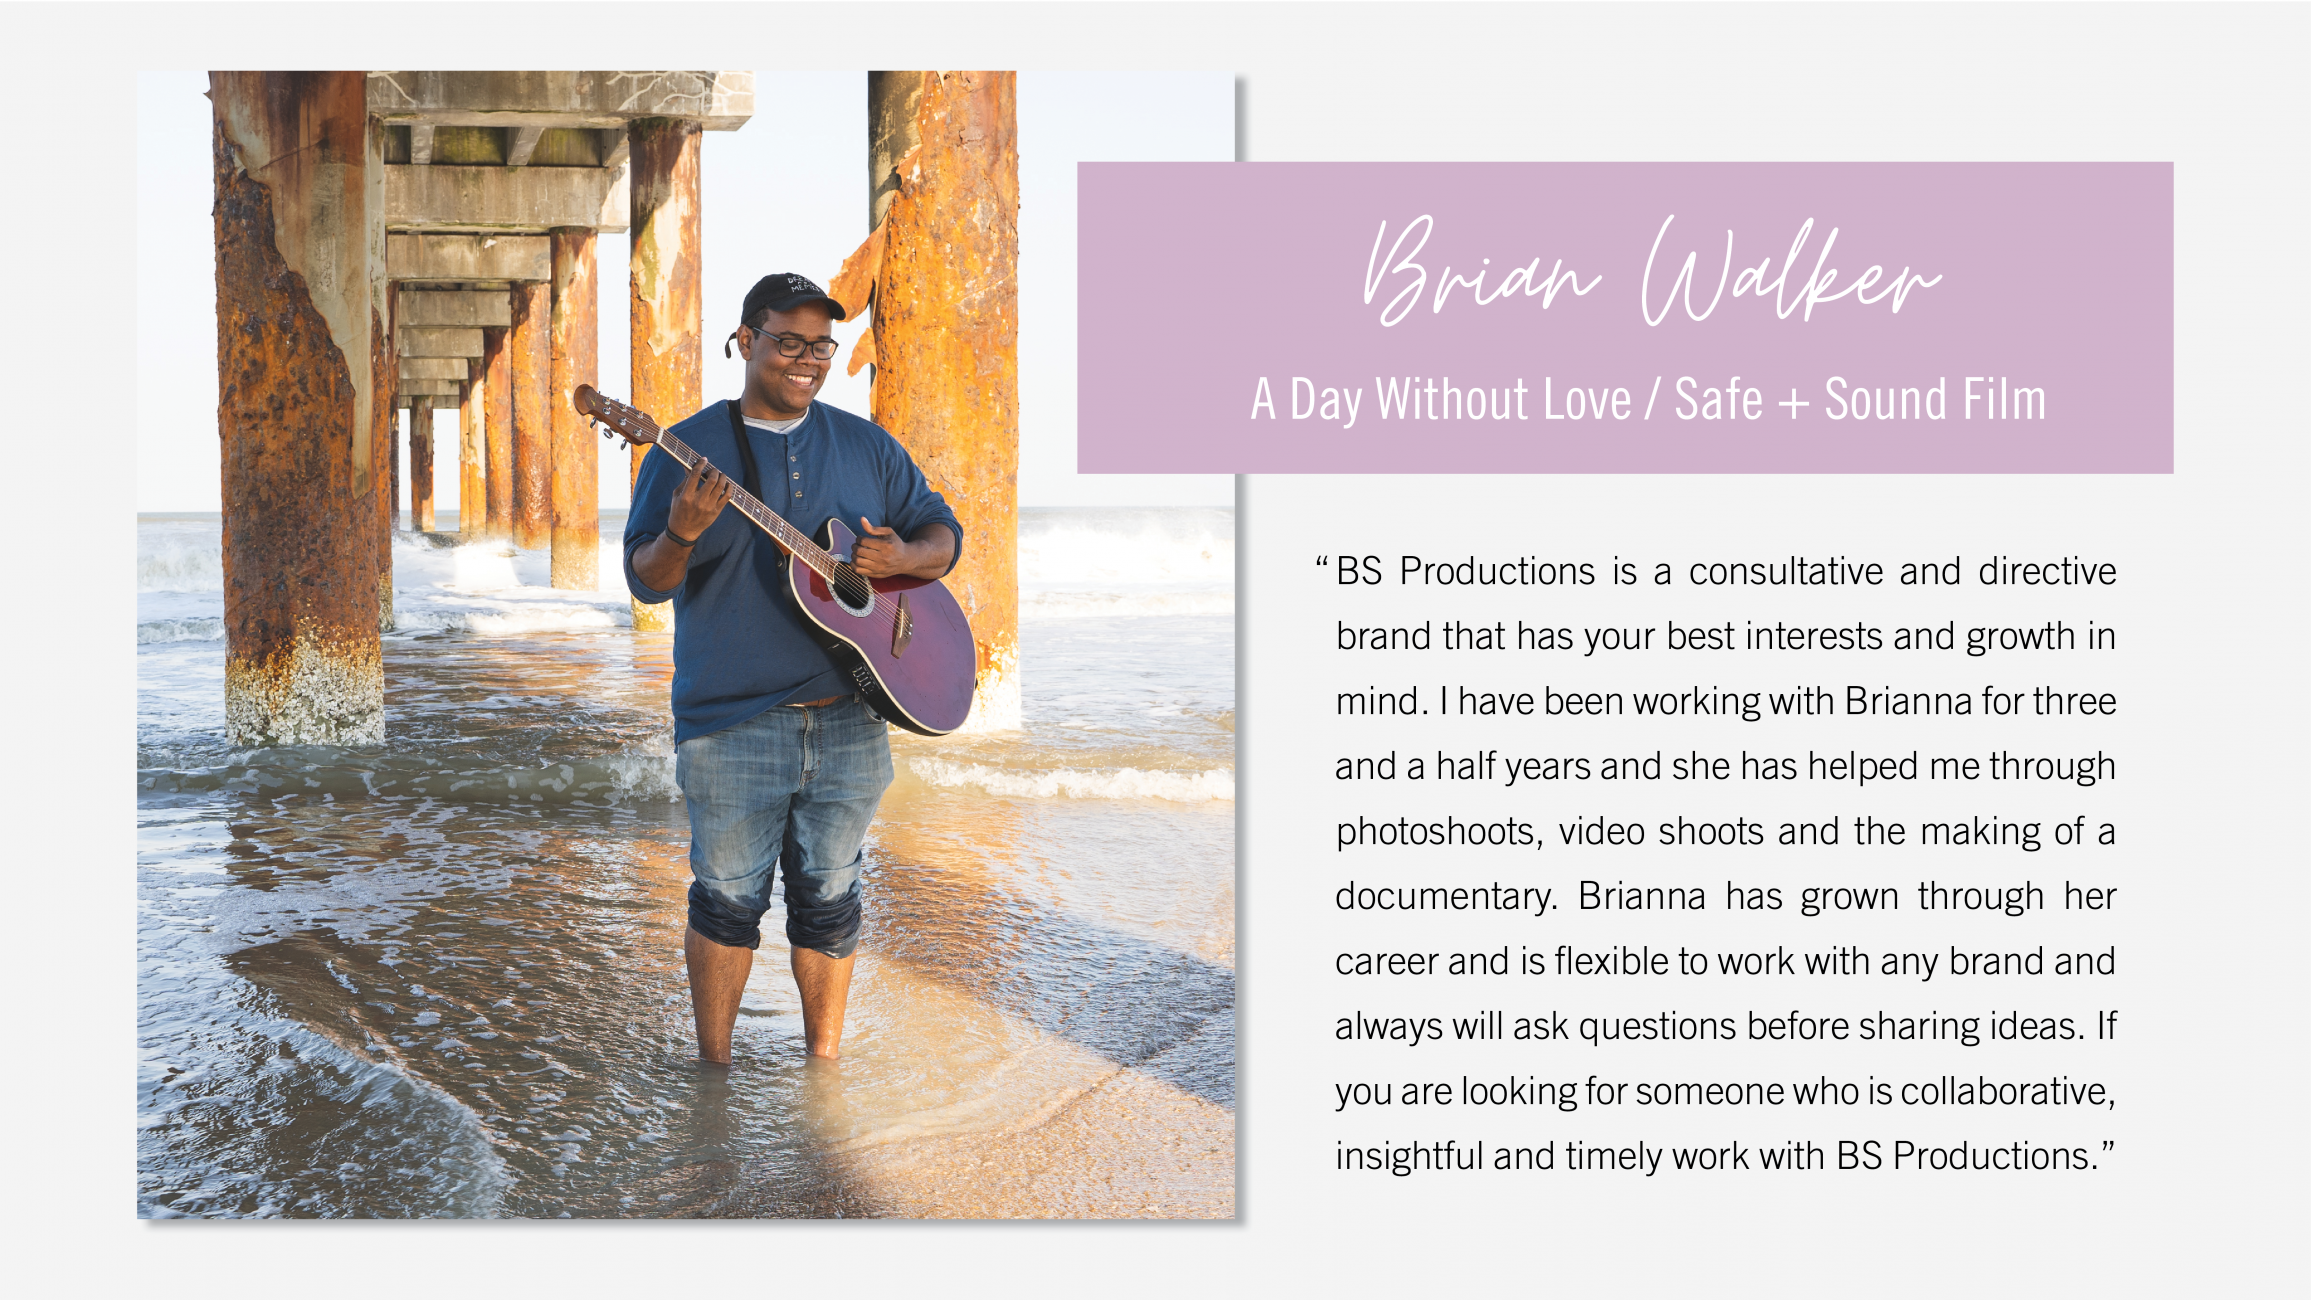 Testimonial graphic from Brian Walker A Day Without Love